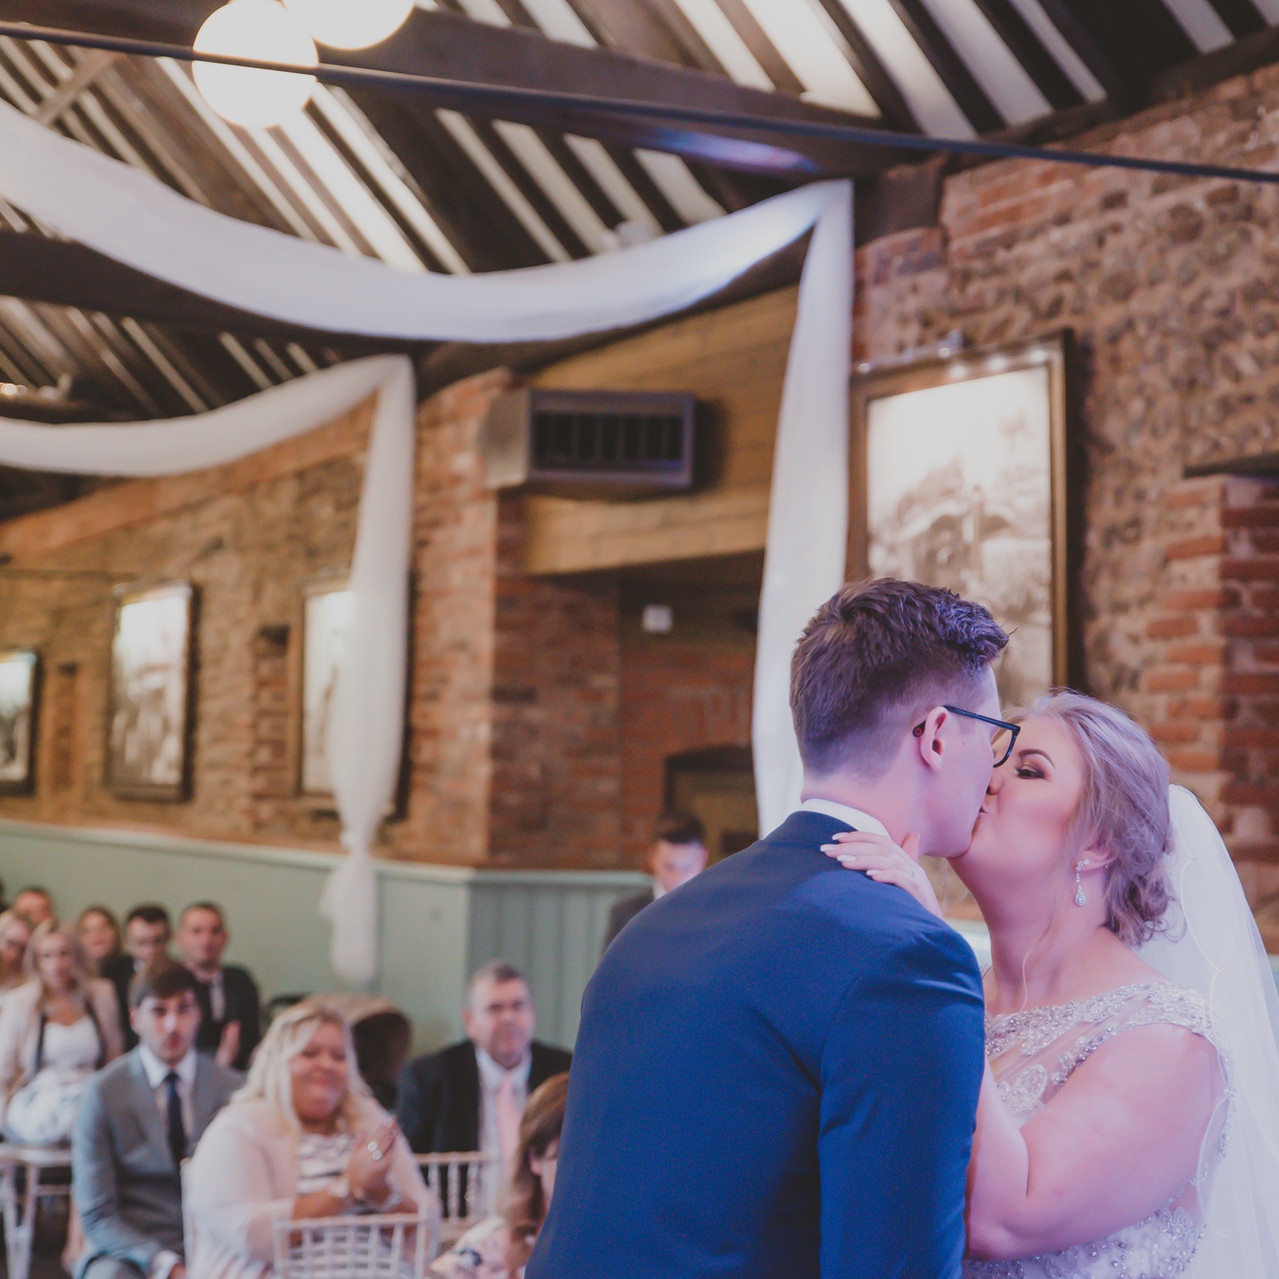 Fay Wedding - Thursford Collection at the Garden Pavilion, Norfolk. 1st Kiss